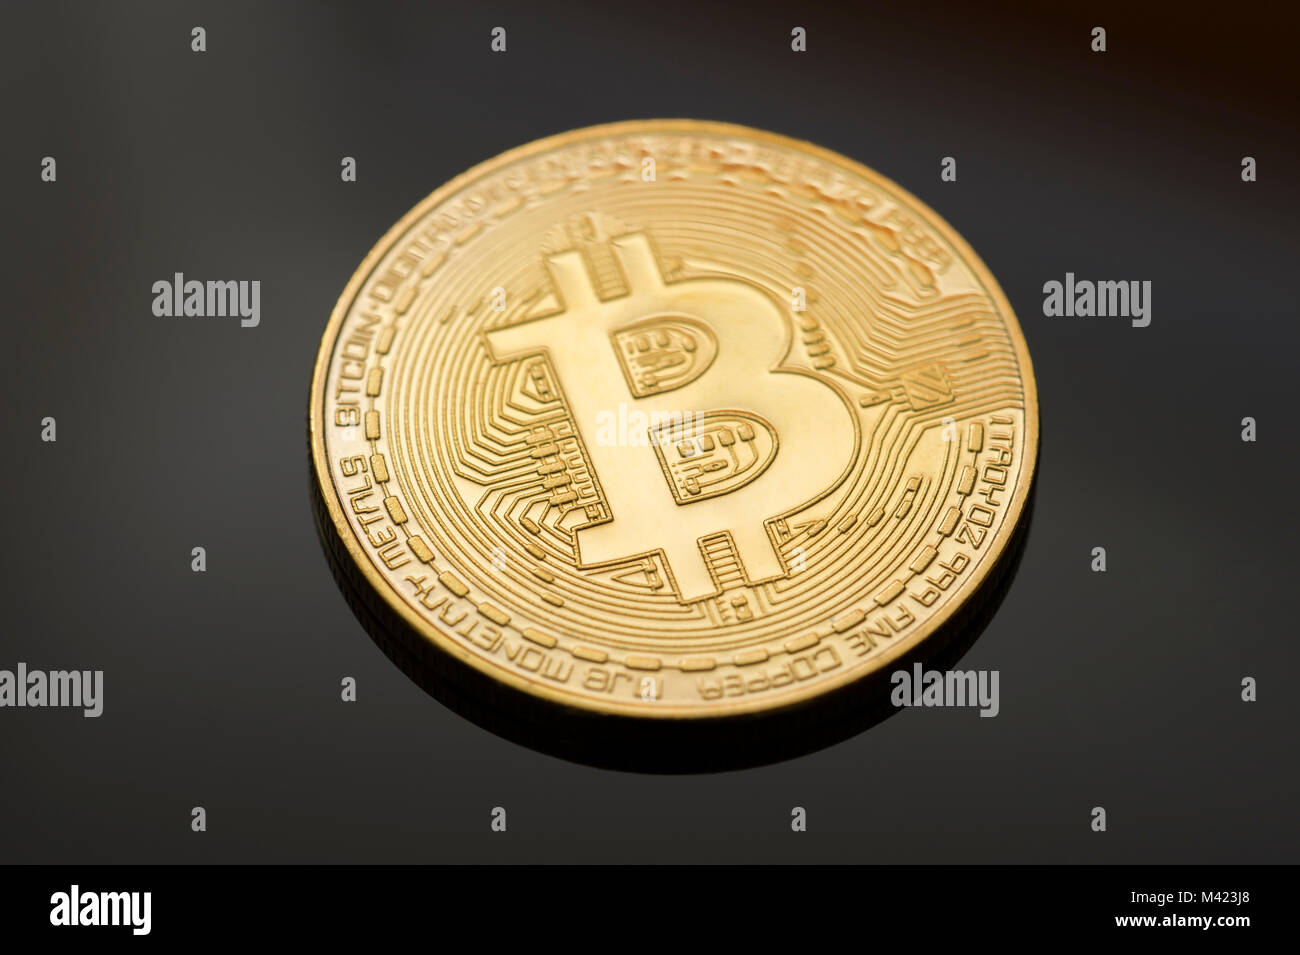 Single gold Bitcoin on black background. One of many digital or cryptocurrencies that uses blockchain technology - Stock Image